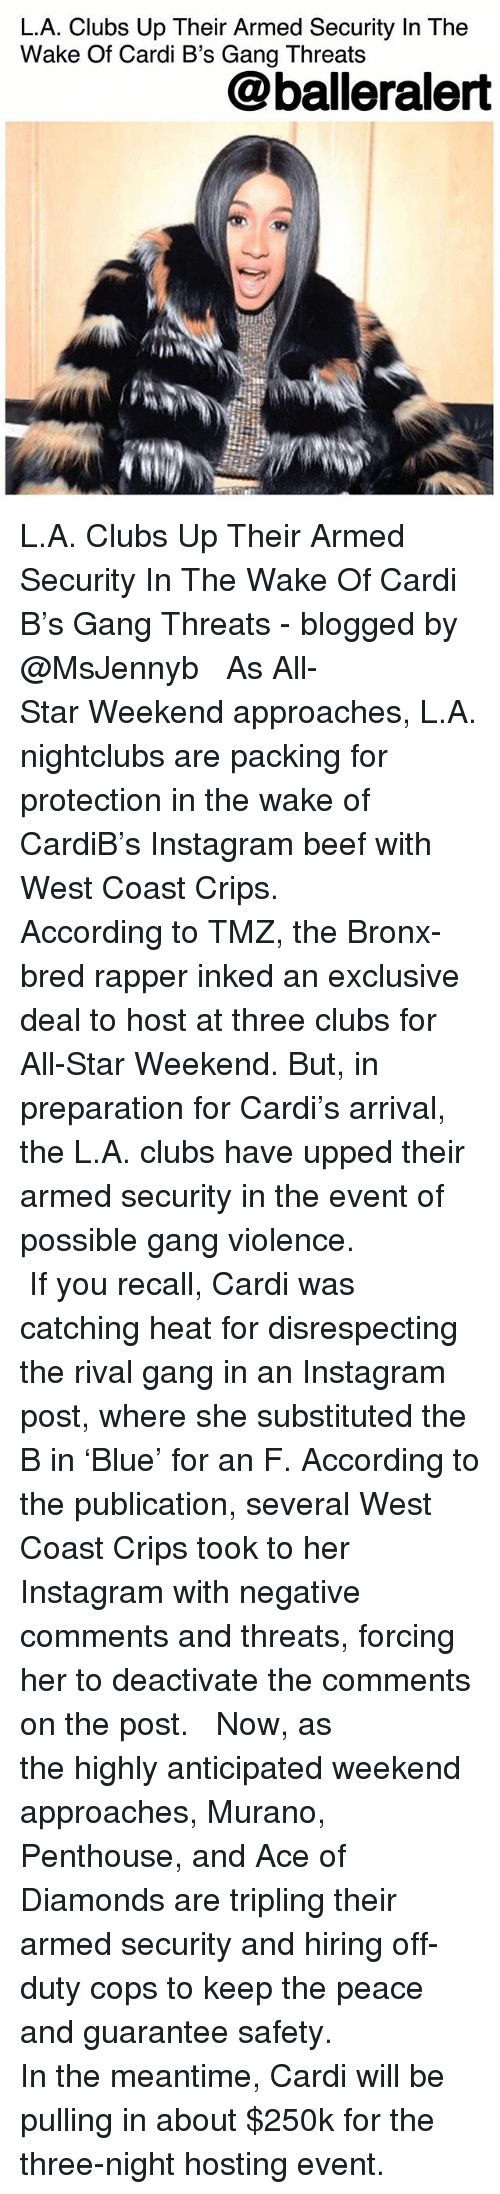 West Coast: L.A. Clubs Up Their Armed Security In The  Wake Of Cardi B's Gang Threats  @balleralert  IN L.A. Clubs Up Their Armed Security In The Wake Of Cardi B's Gang Threats - blogged by @MsJennyb ⠀⠀⠀⠀⠀⠀⠀ ⠀⠀⠀⠀⠀⠀⠀ As All-Star Weekend approaches, L.A. nightclubs are packing for protection in the wake of CardiB's Instagram beef with West Coast Crips. ⠀⠀⠀⠀⠀⠀⠀ ⠀⠀⠀⠀⠀⠀⠀ According to TMZ, the Bronx-bred rapper inked an exclusive deal to host at three clubs for All-Star Weekend. But, in preparation for Cardi's arrival, the L.A. clubs have upped their armed security in the event of possible gang violence. ⠀⠀⠀⠀⠀⠀⠀ ⠀⠀⠀⠀⠀⠀⠀ If you recall, Cardi was catching heat for disrespecting the rival gang in an Instagram post, where she substituted the B in 'Blue' for an F. According to the publication, several West Coast Crips took to her Instagram with negative comments and threats, forcing her to deactivate the comments on the post. ⠀⠀⠀⠀⠀⠀⠀ ⠀⠀⠀⠀⠀⠀⠀ Now, as the highly anticipated weekend approaches, Murano, Penthouse, and Ace of Diamonds are tripling their armed security and hiring off-duty cops to keep the peace and guarantee safety. ⠀⠀⠀⠀⠀⠀⠀ ⠀⠀⠀⠀⠀⠀⠀ In the meantime, Cardi will be pulling in about $250k for the three-night hosting event.